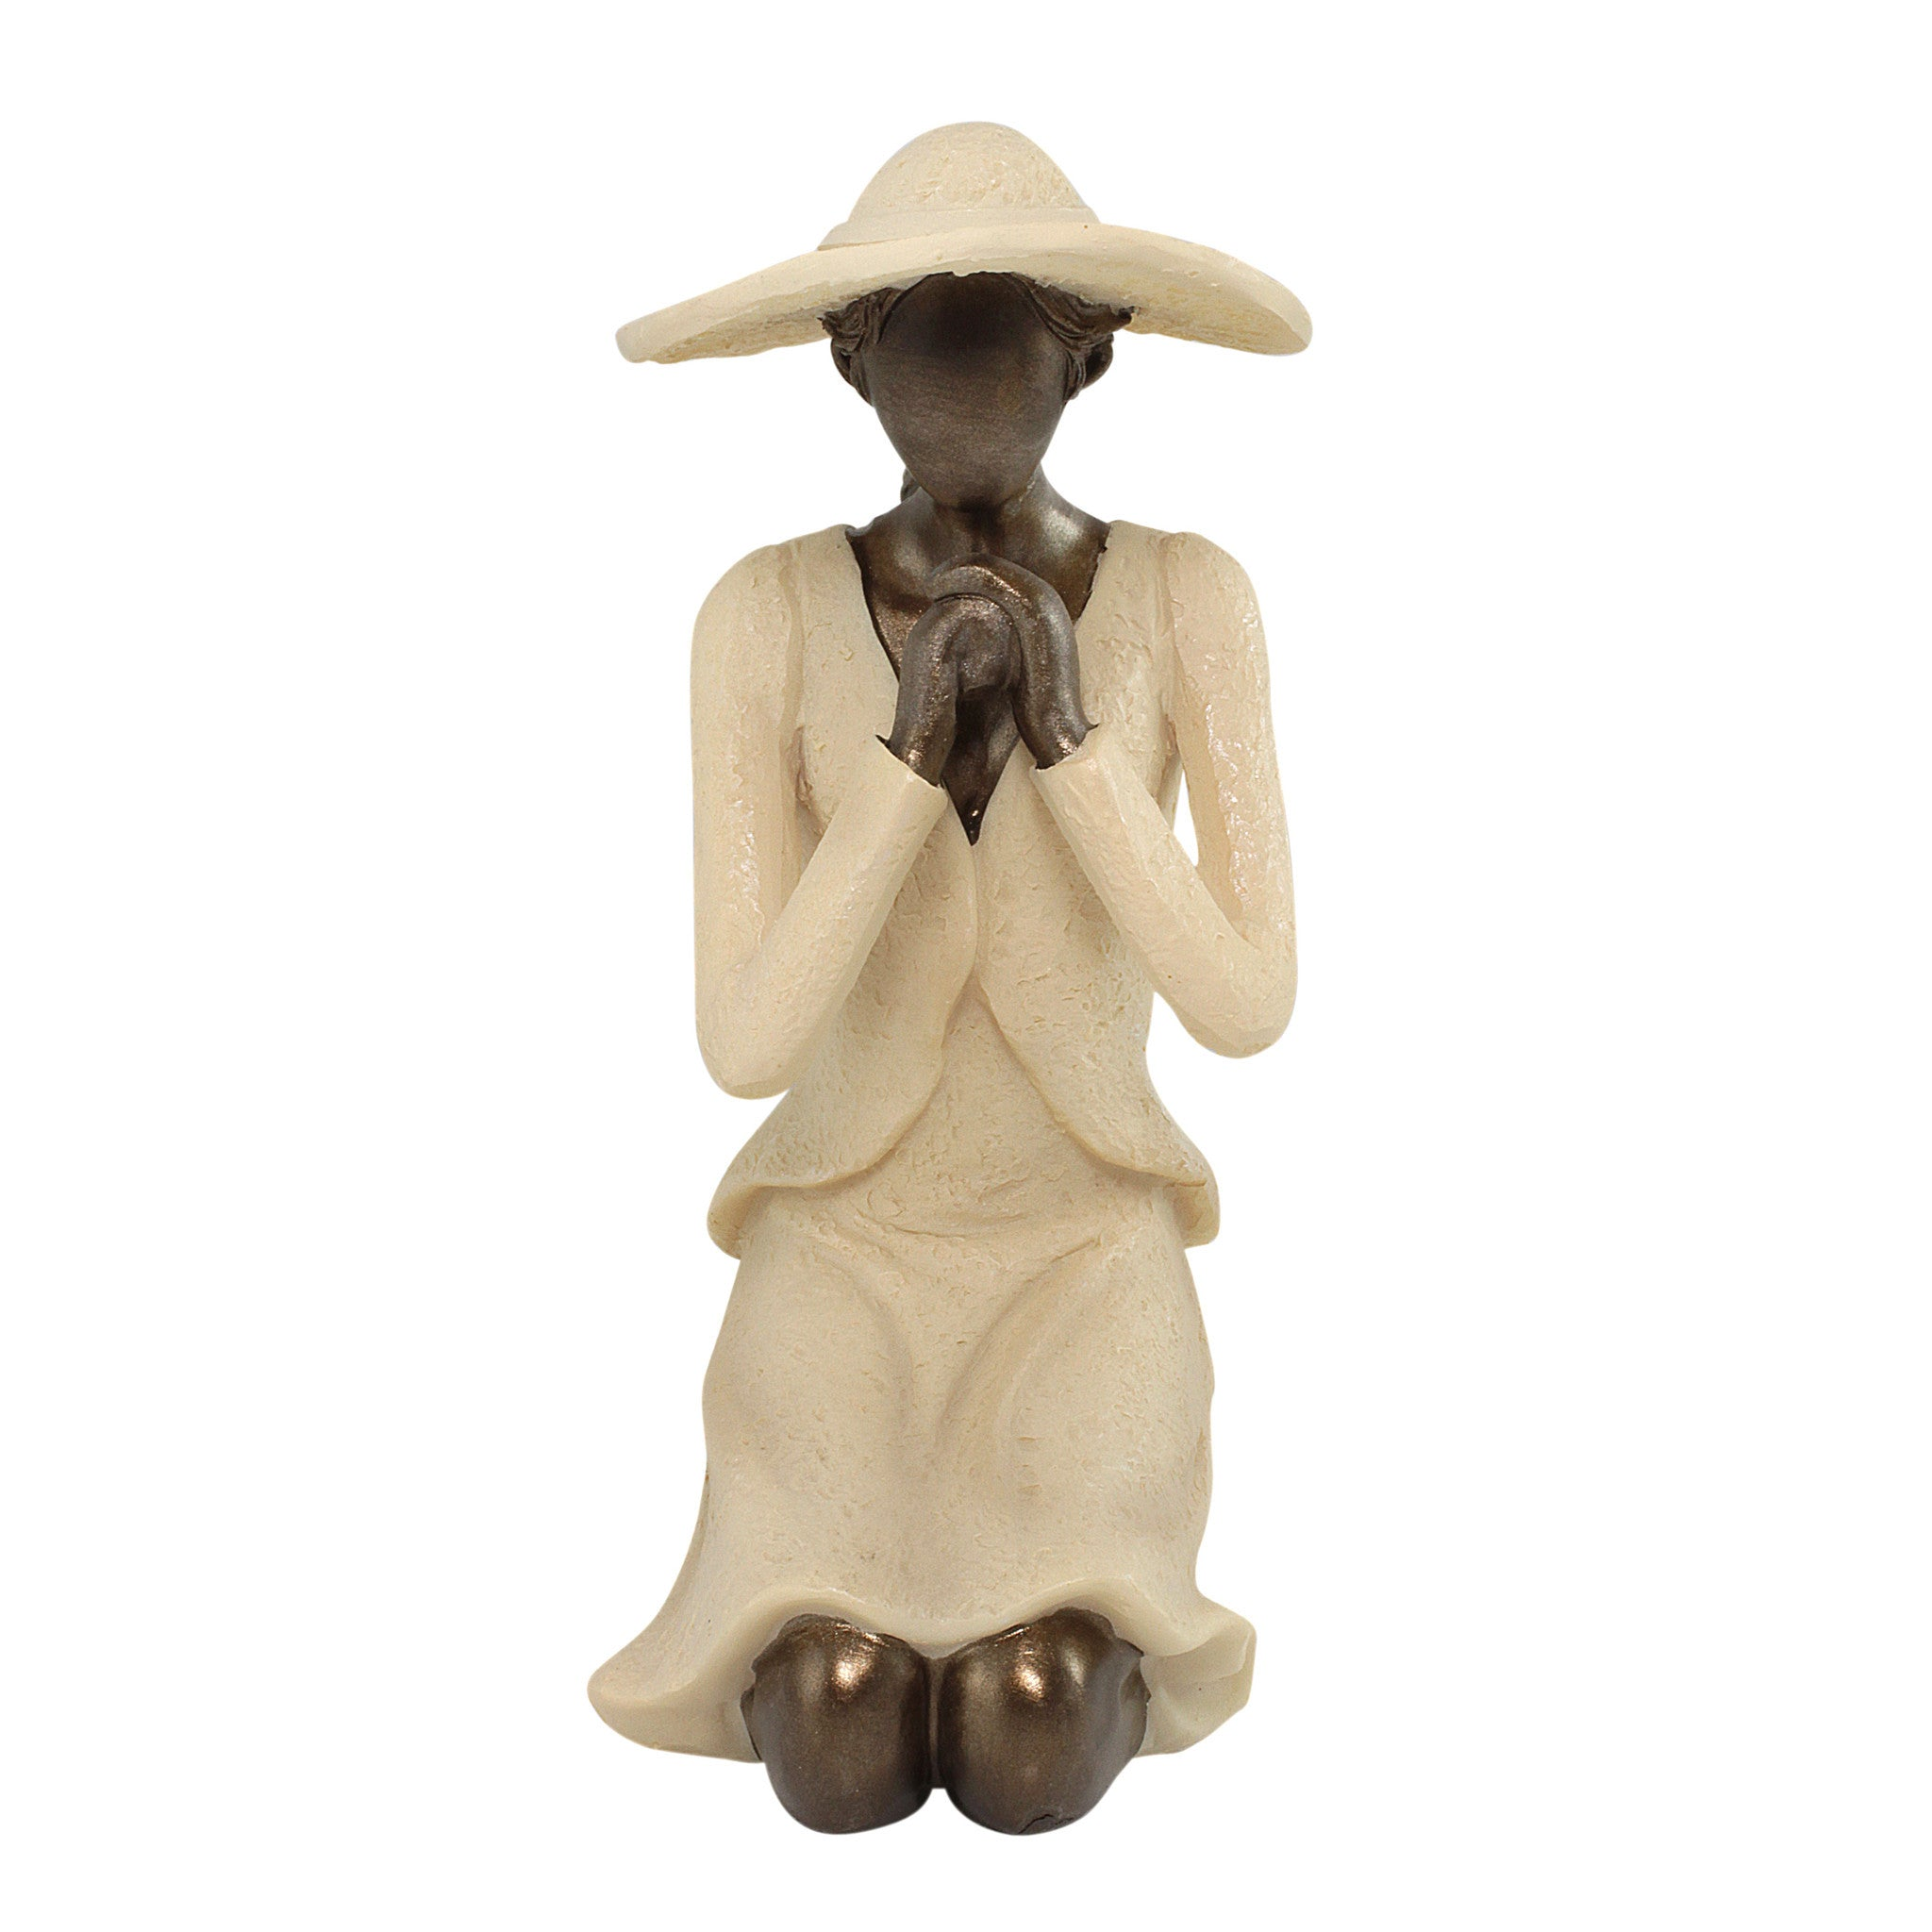 Give Me Strength Figurine: Virtuous Woman Collection by Unison Gifts